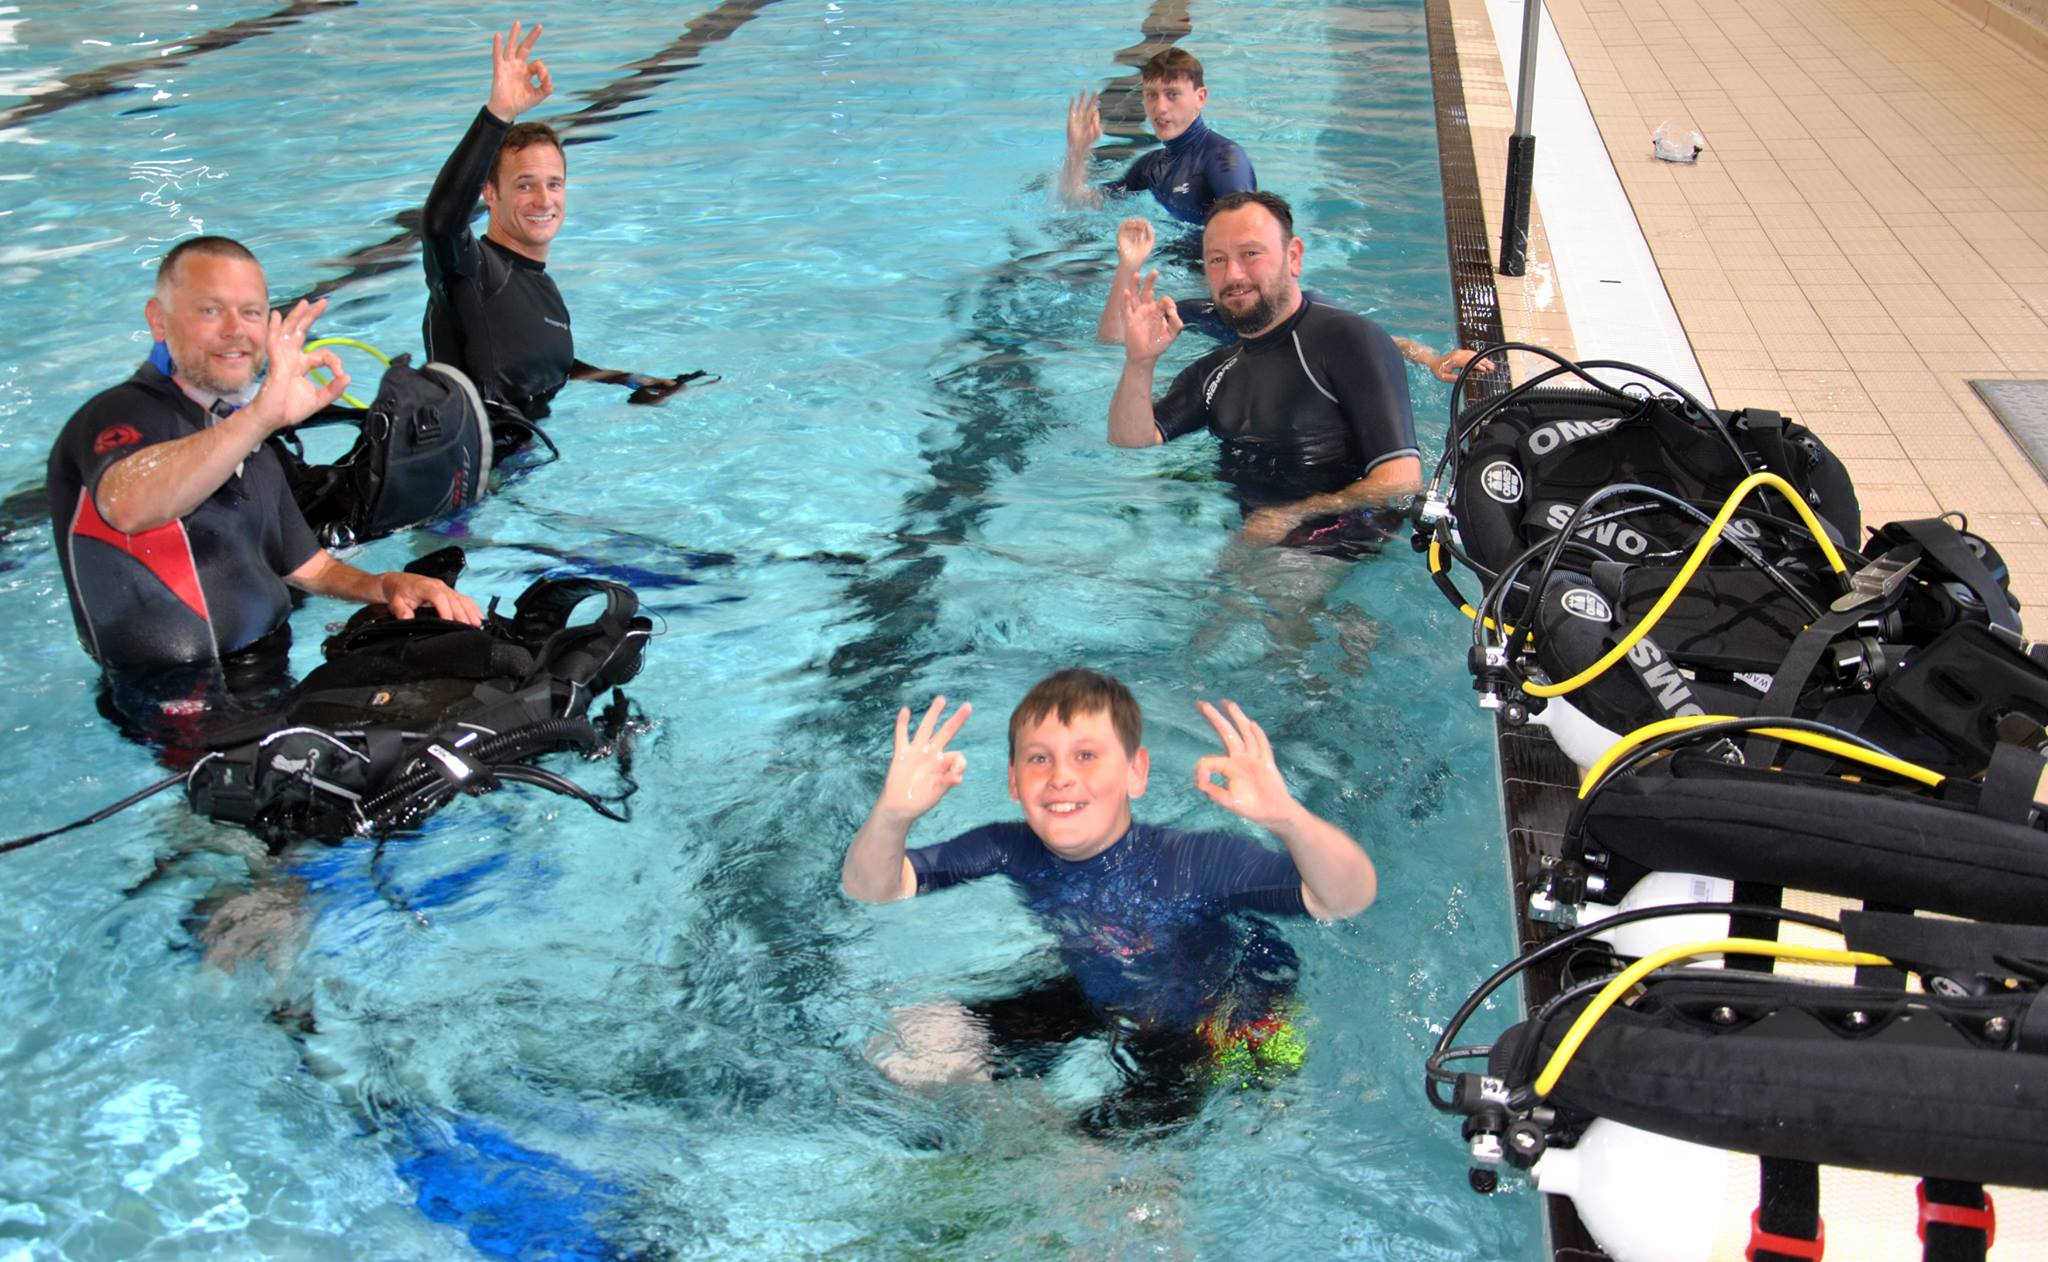 Happy try divers having a scuba experience